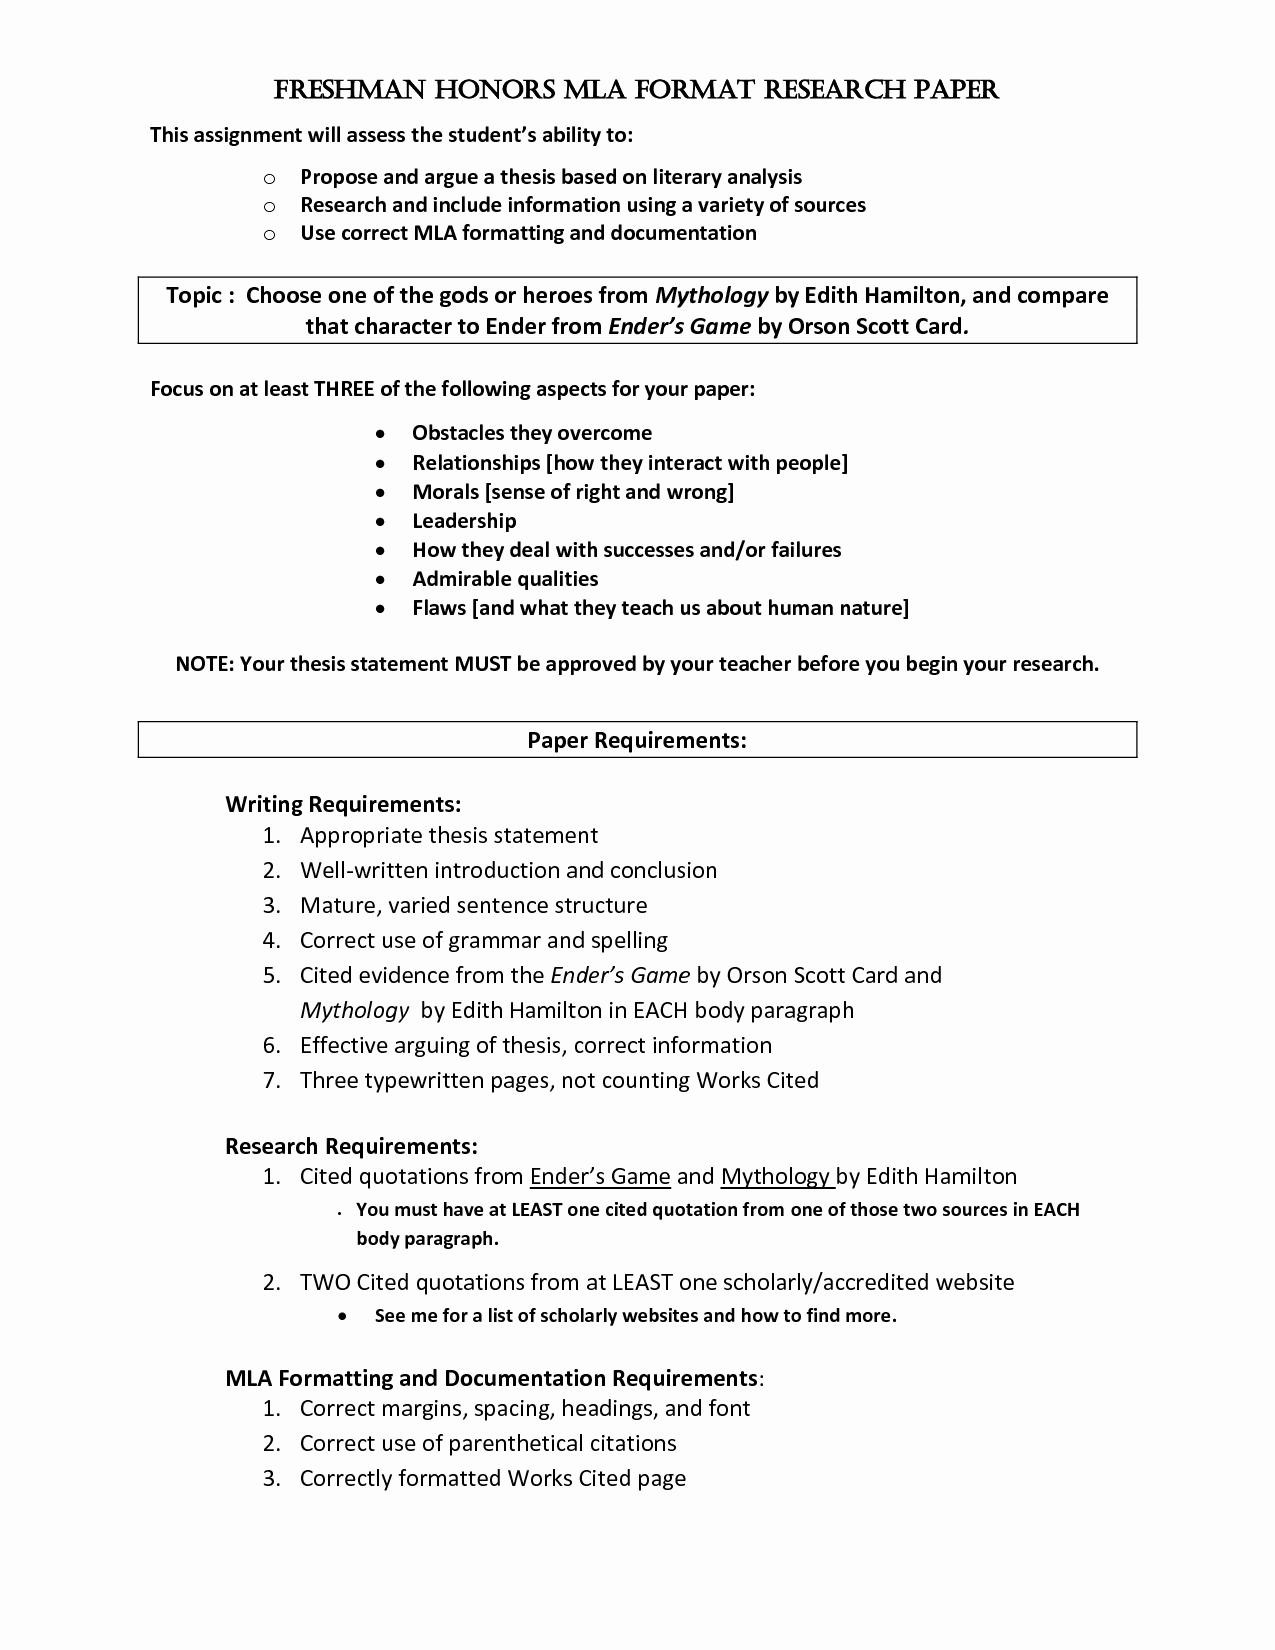 014 How To Cite Research Paper Mla Citation Awesome Format Resume